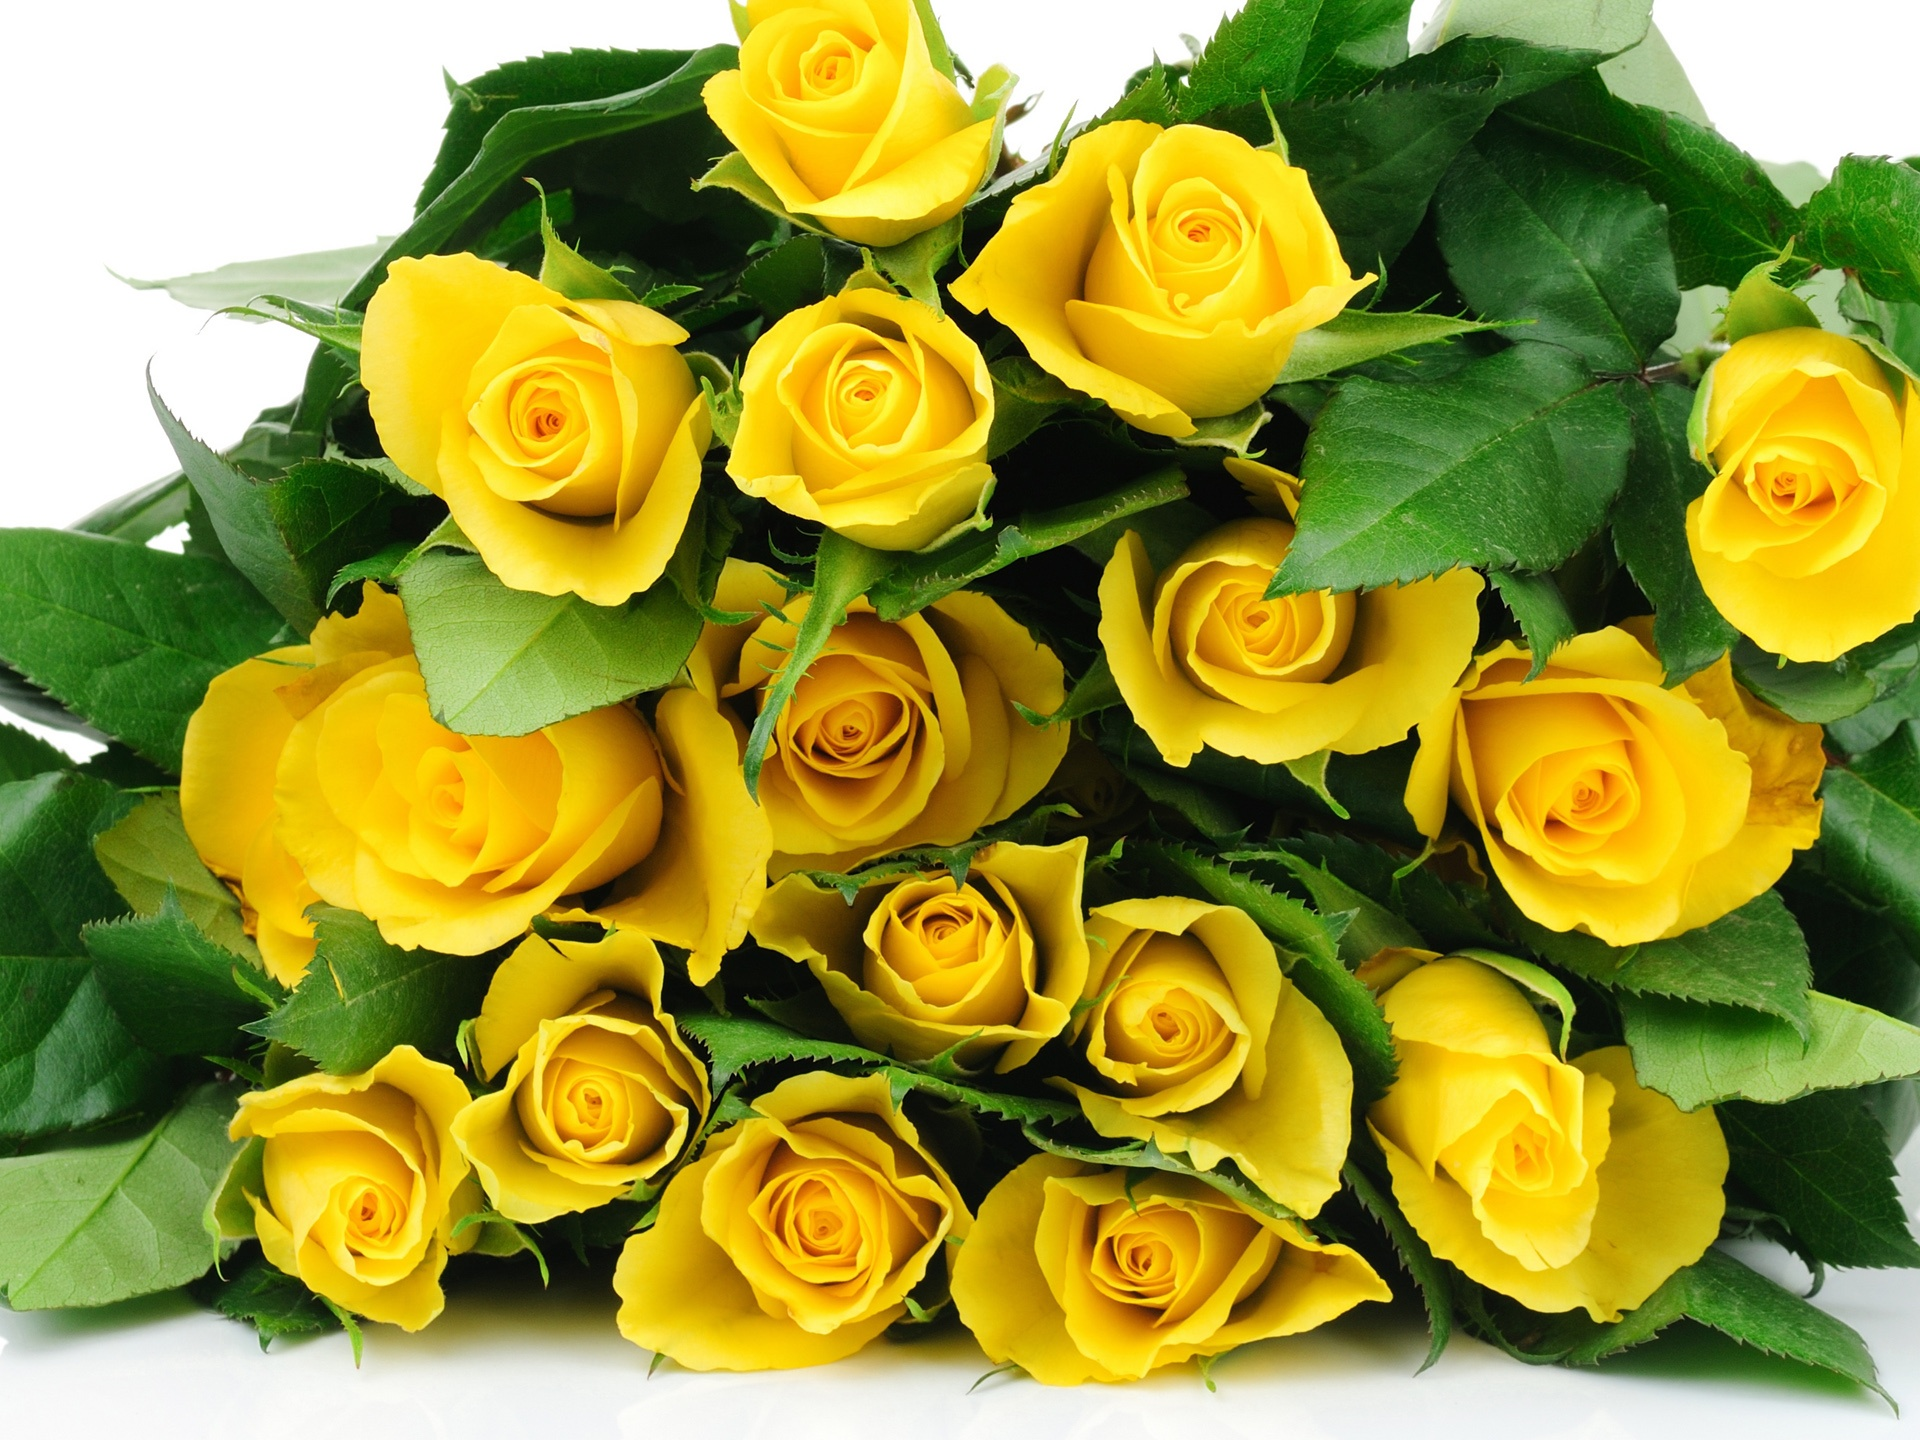 Wallpaper a bouquet flowers yellow roses 2560x1440 qhd picture image hd widescreen mightylinksfo